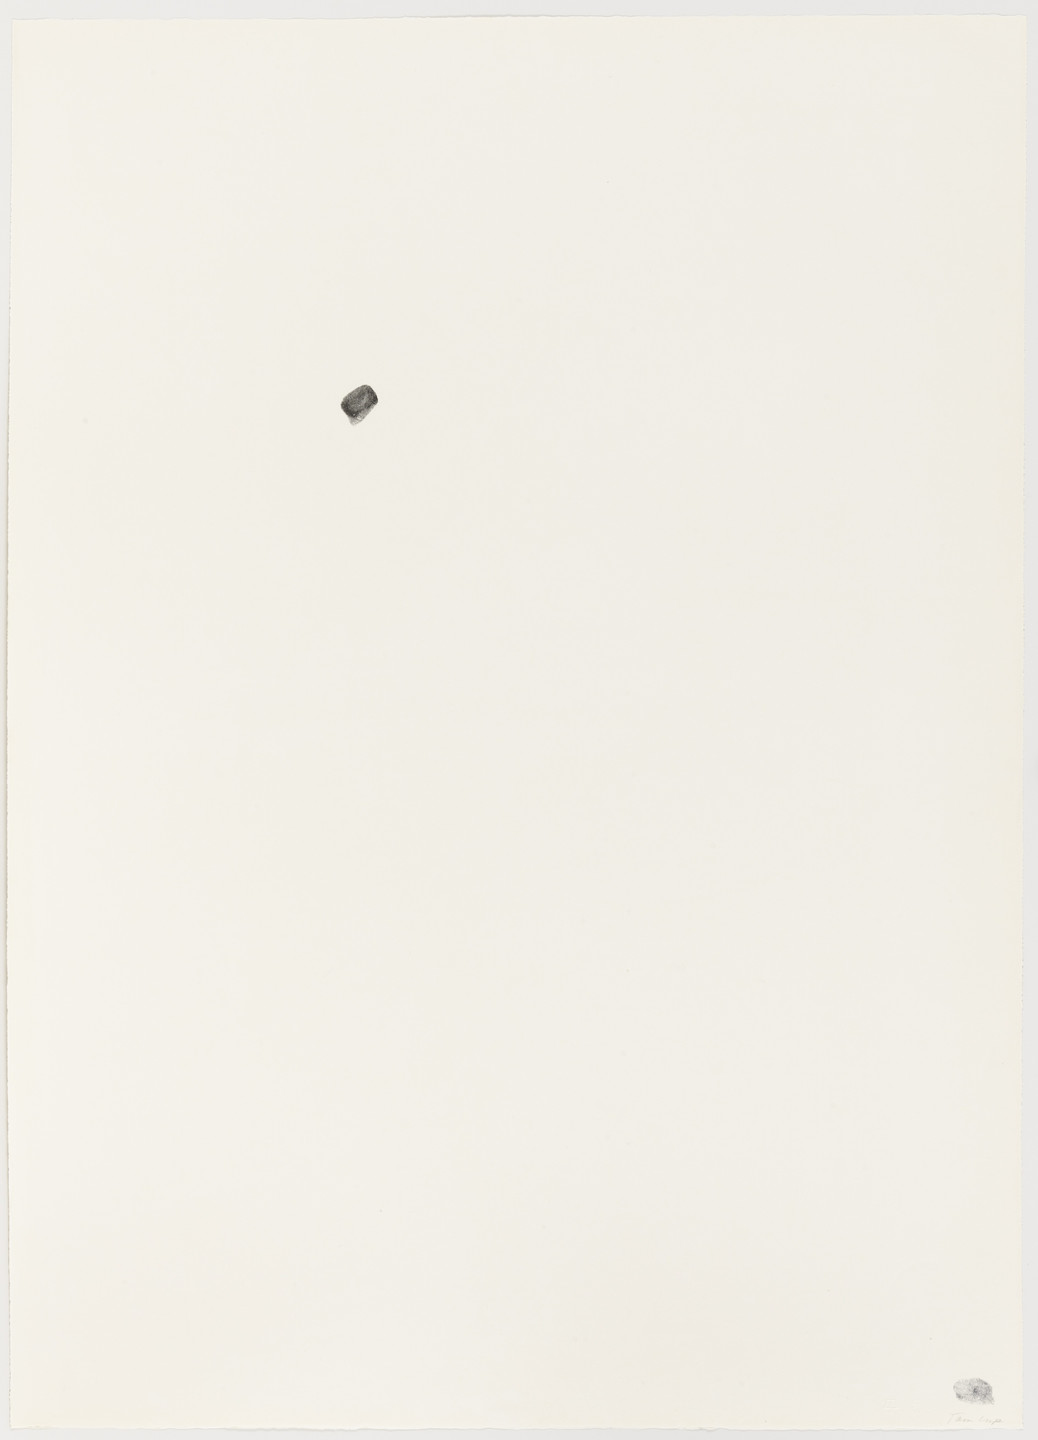 Bruce Conner. Thumb Print. 1965